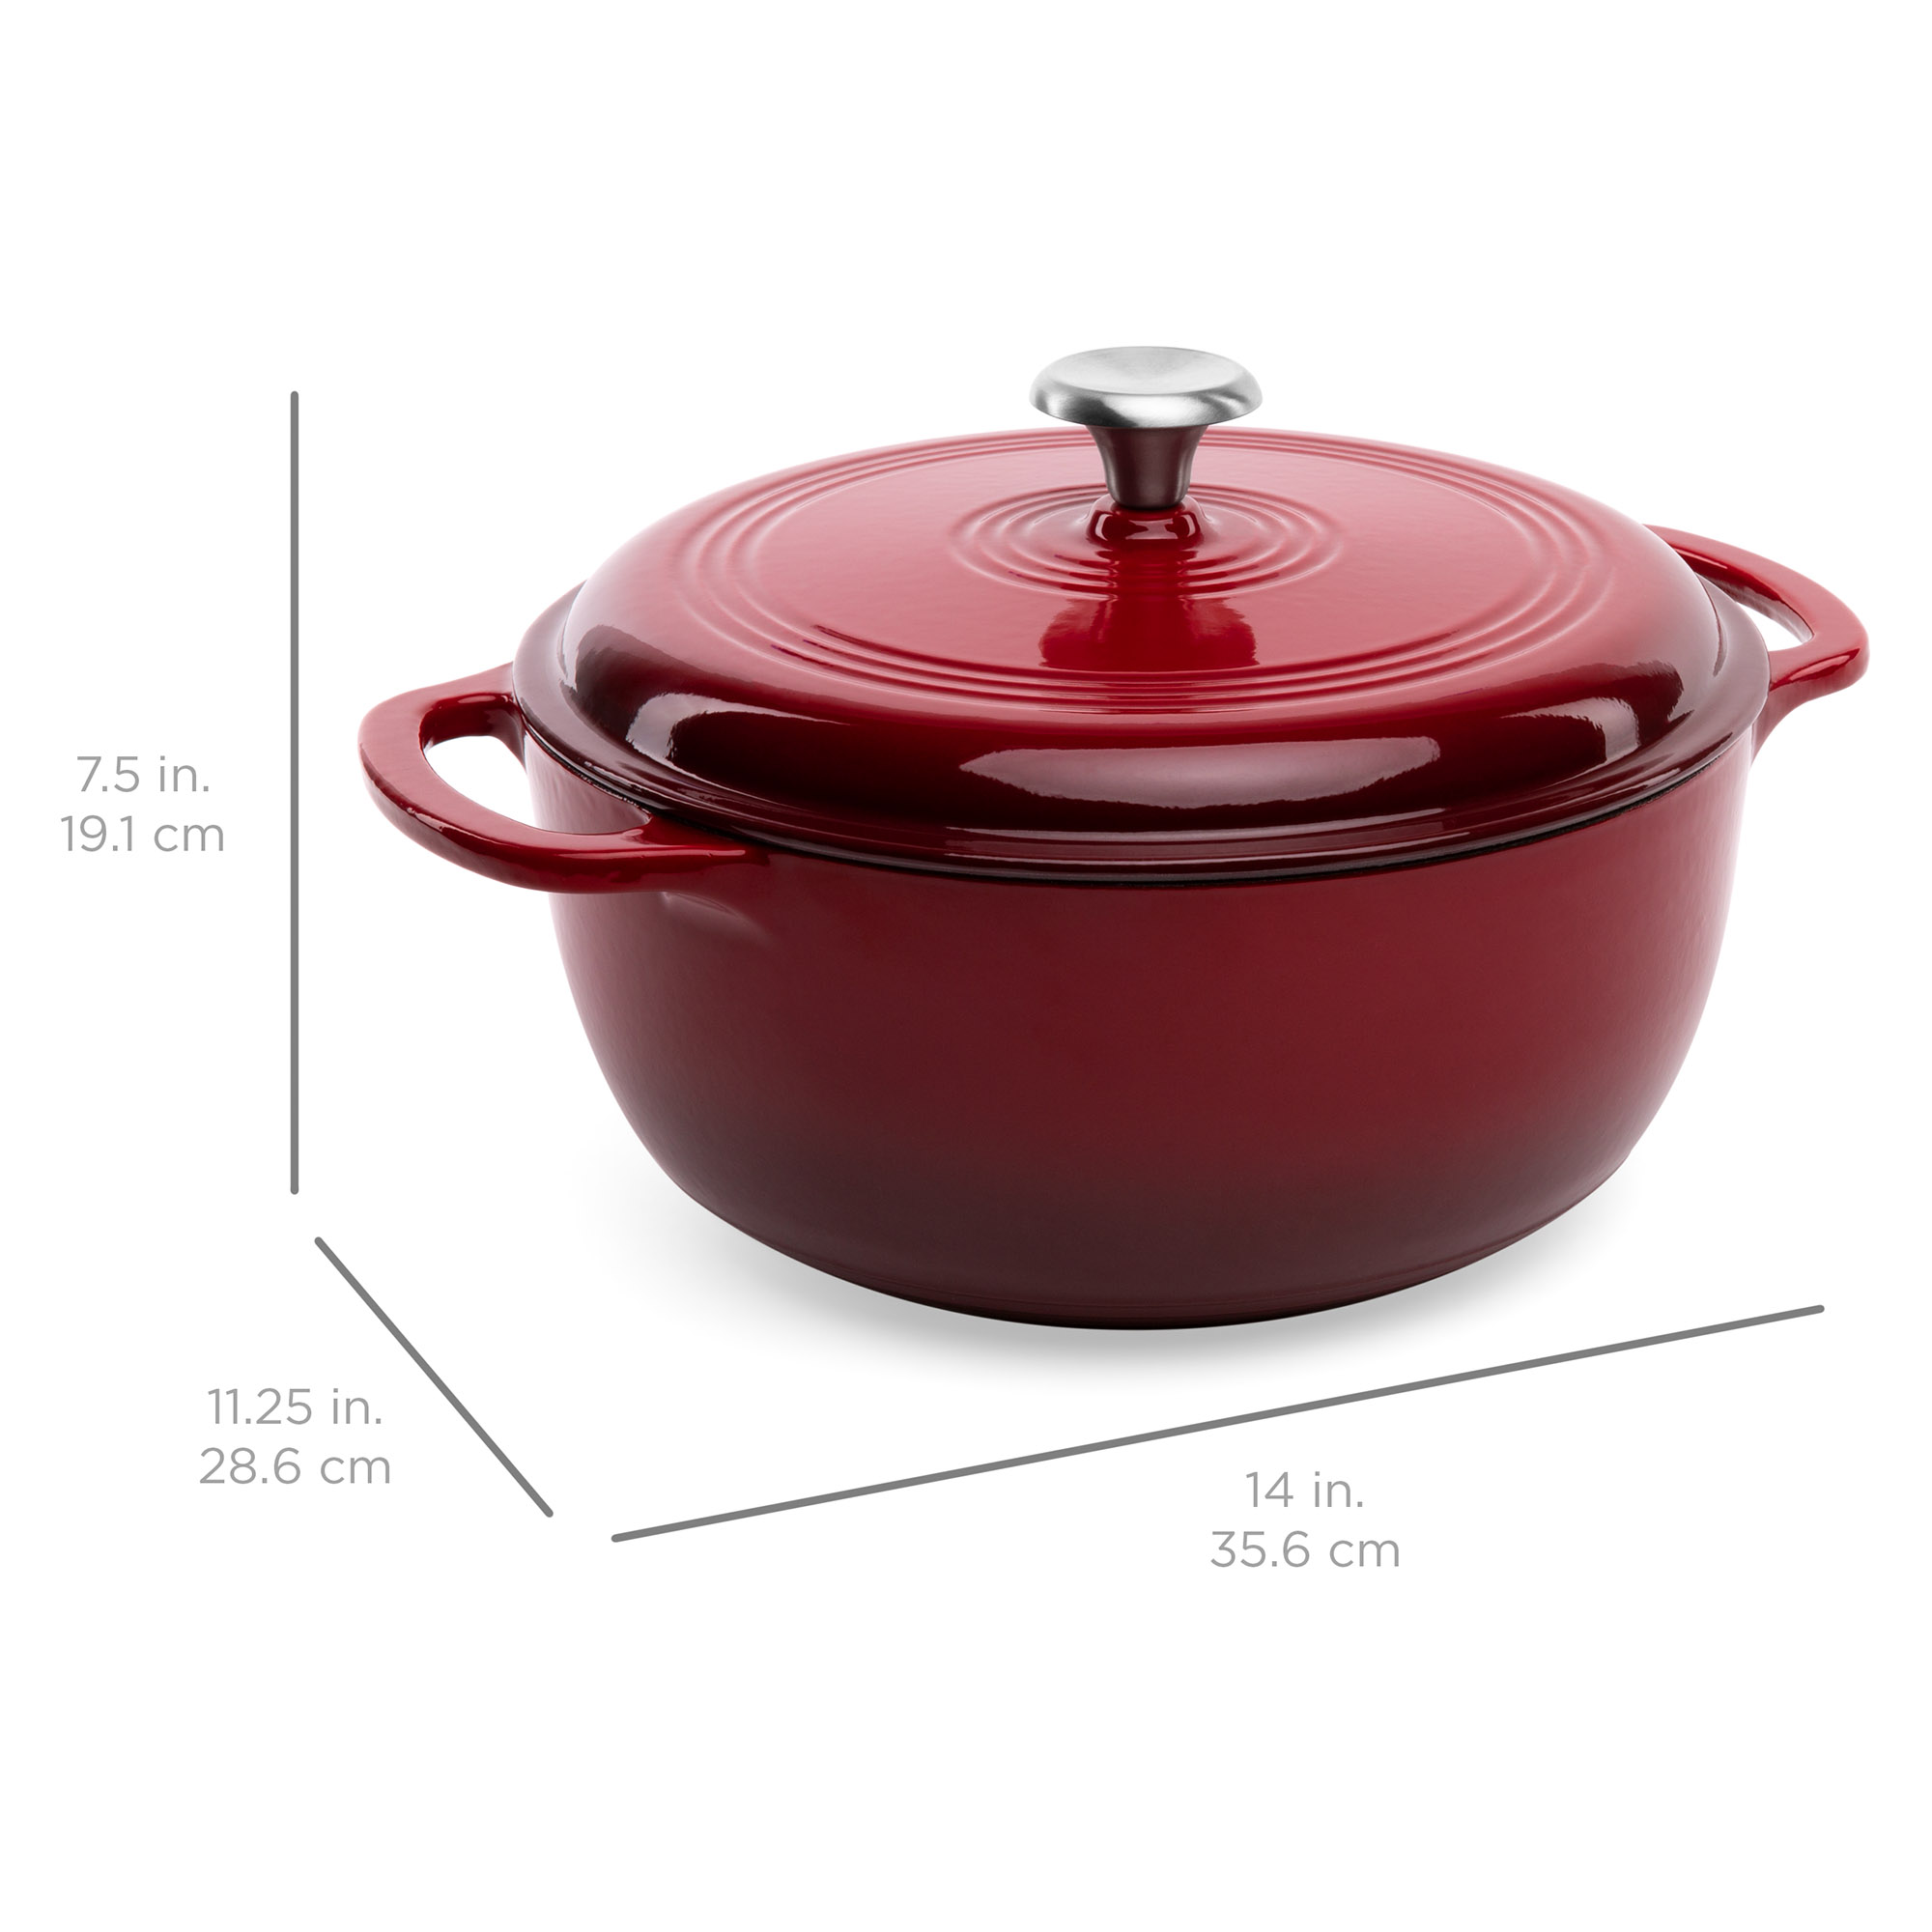 Roasting Gas Electric Blue Side Handles Induction Oven Compatible Secure Lid for Baking Best Choice Products 6qt Non-Stick Heavy-Duty Cast-Iron Ceramic Dutch Oven w//Enamel Coating Braising